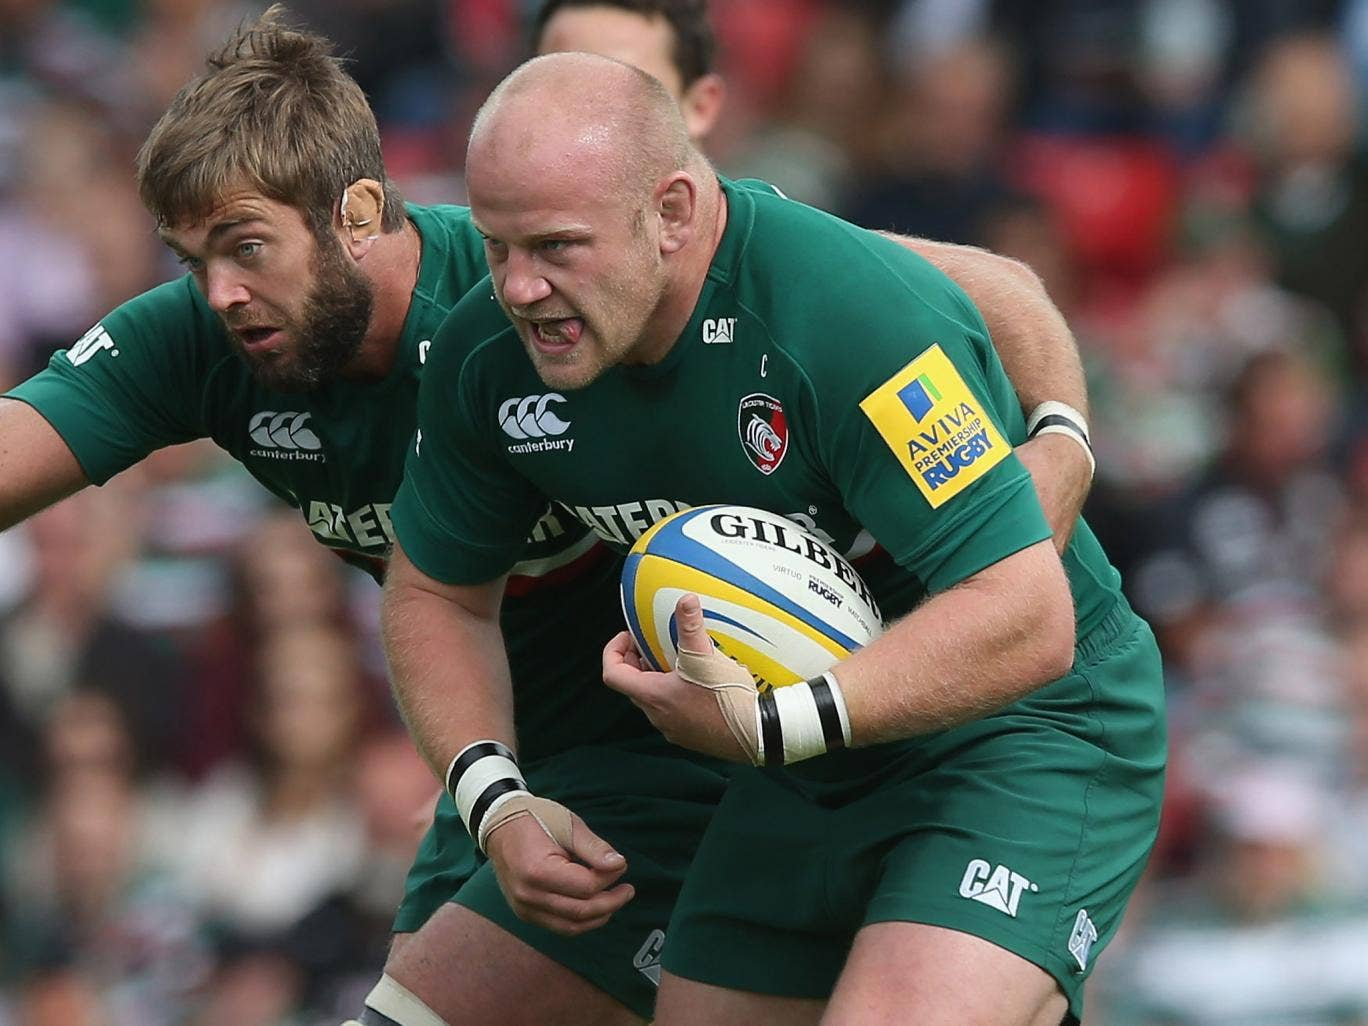 Dan Cole (R), alongside Leicester Tigers and England team-mate Geoff Parling (L), has been cleared of biting in the Aviva Premiership match against Worcester Warriors